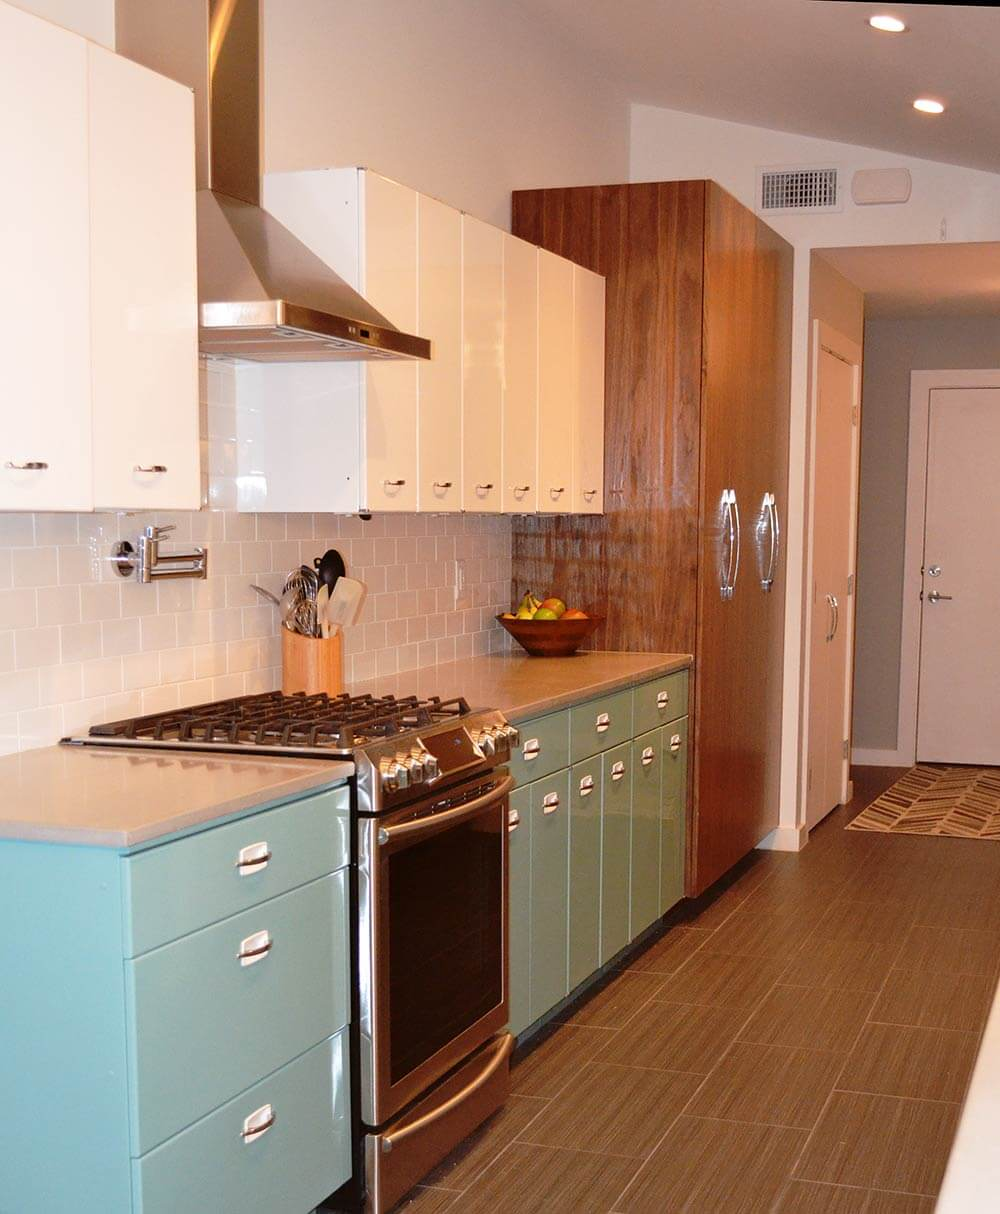 Kitchen Cabinets: Sam Has A Great Experience With Powder Coating Her Vintage